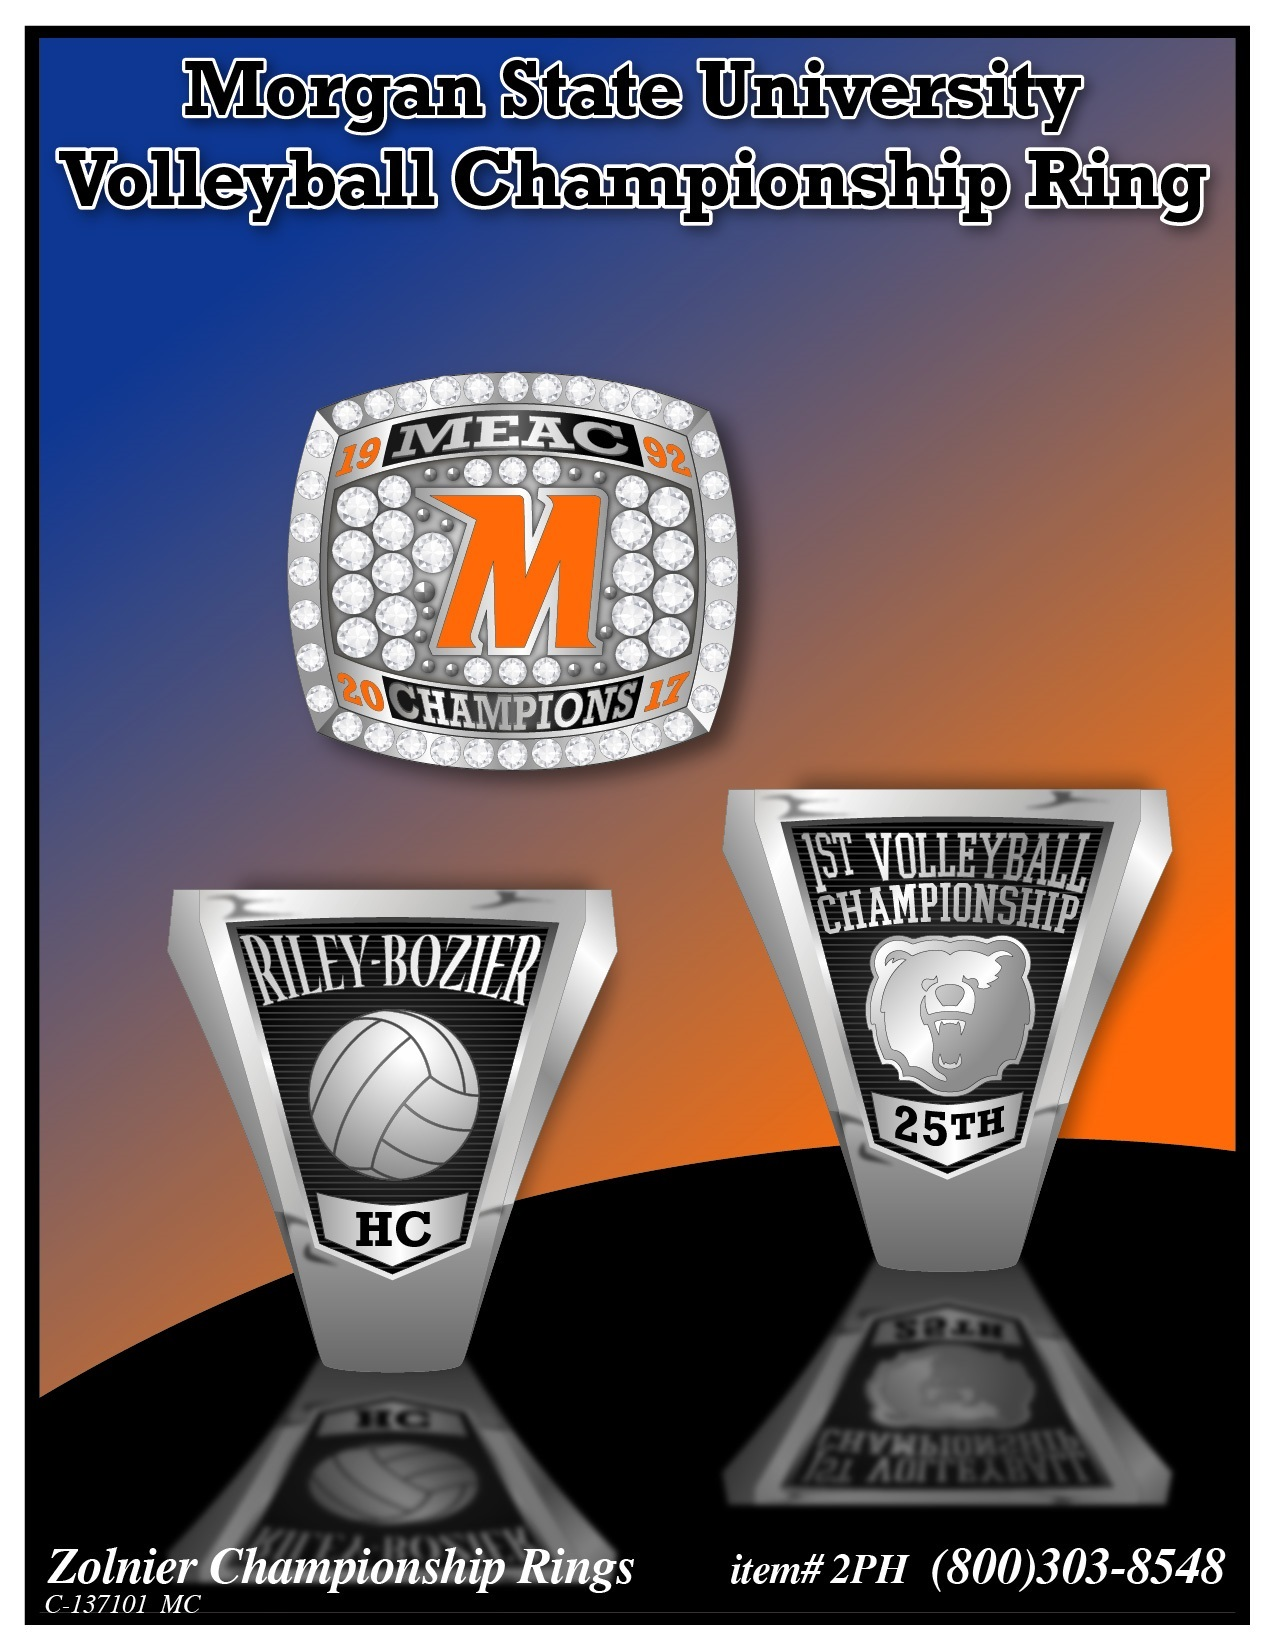 C-137101 Morgan State Volleyball Champ Ring